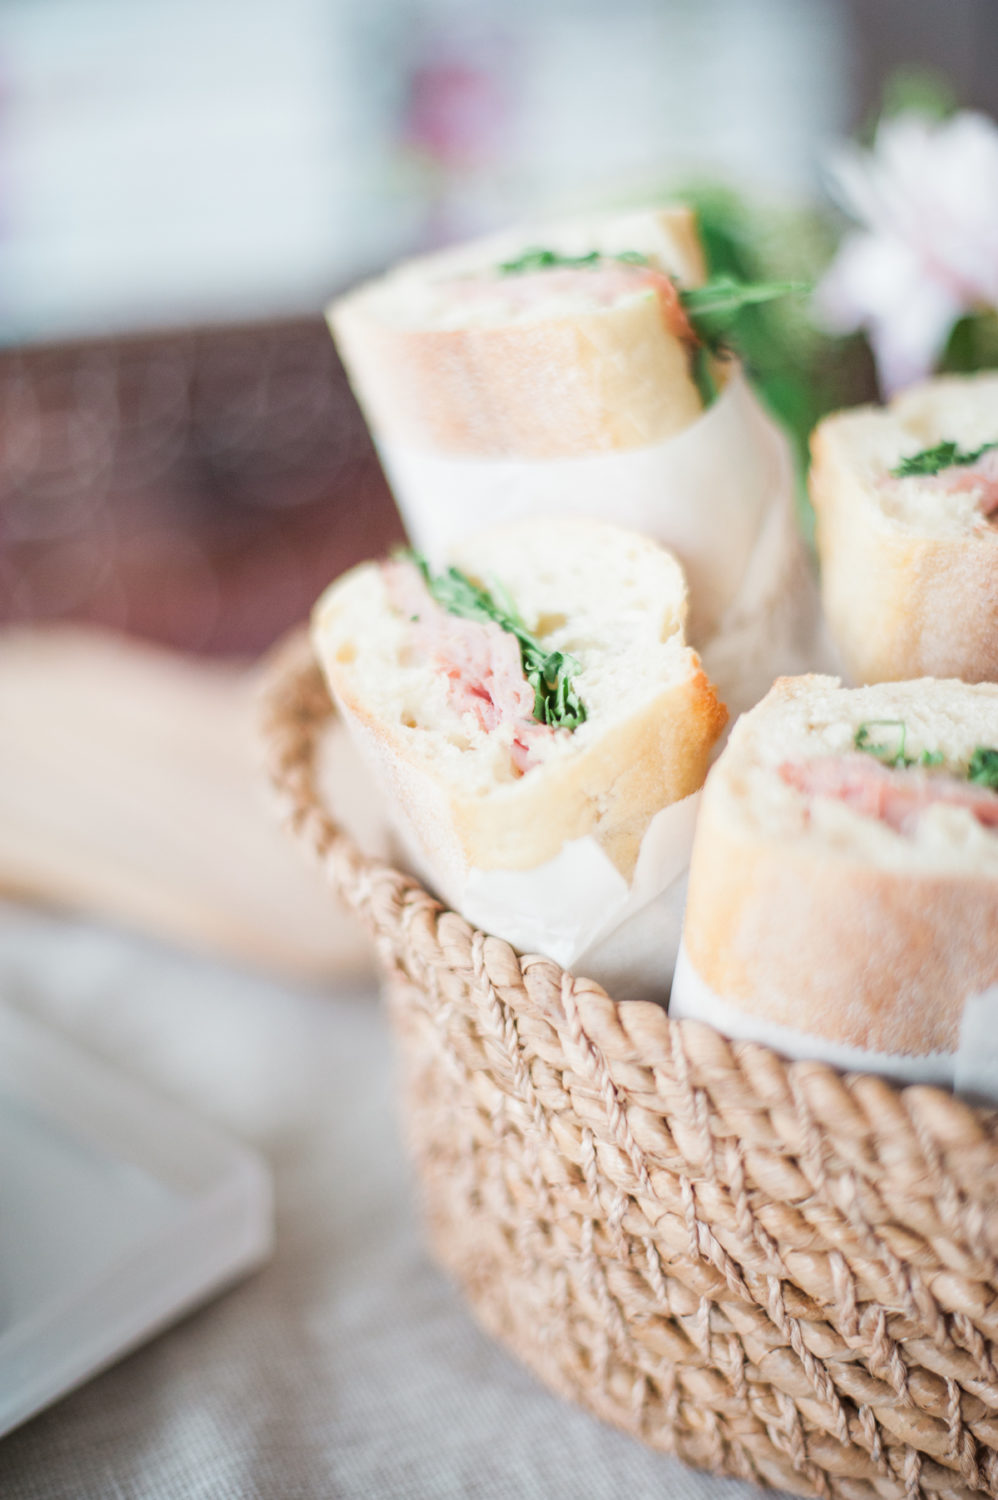 Sandwiches wrapped in parchment and twine